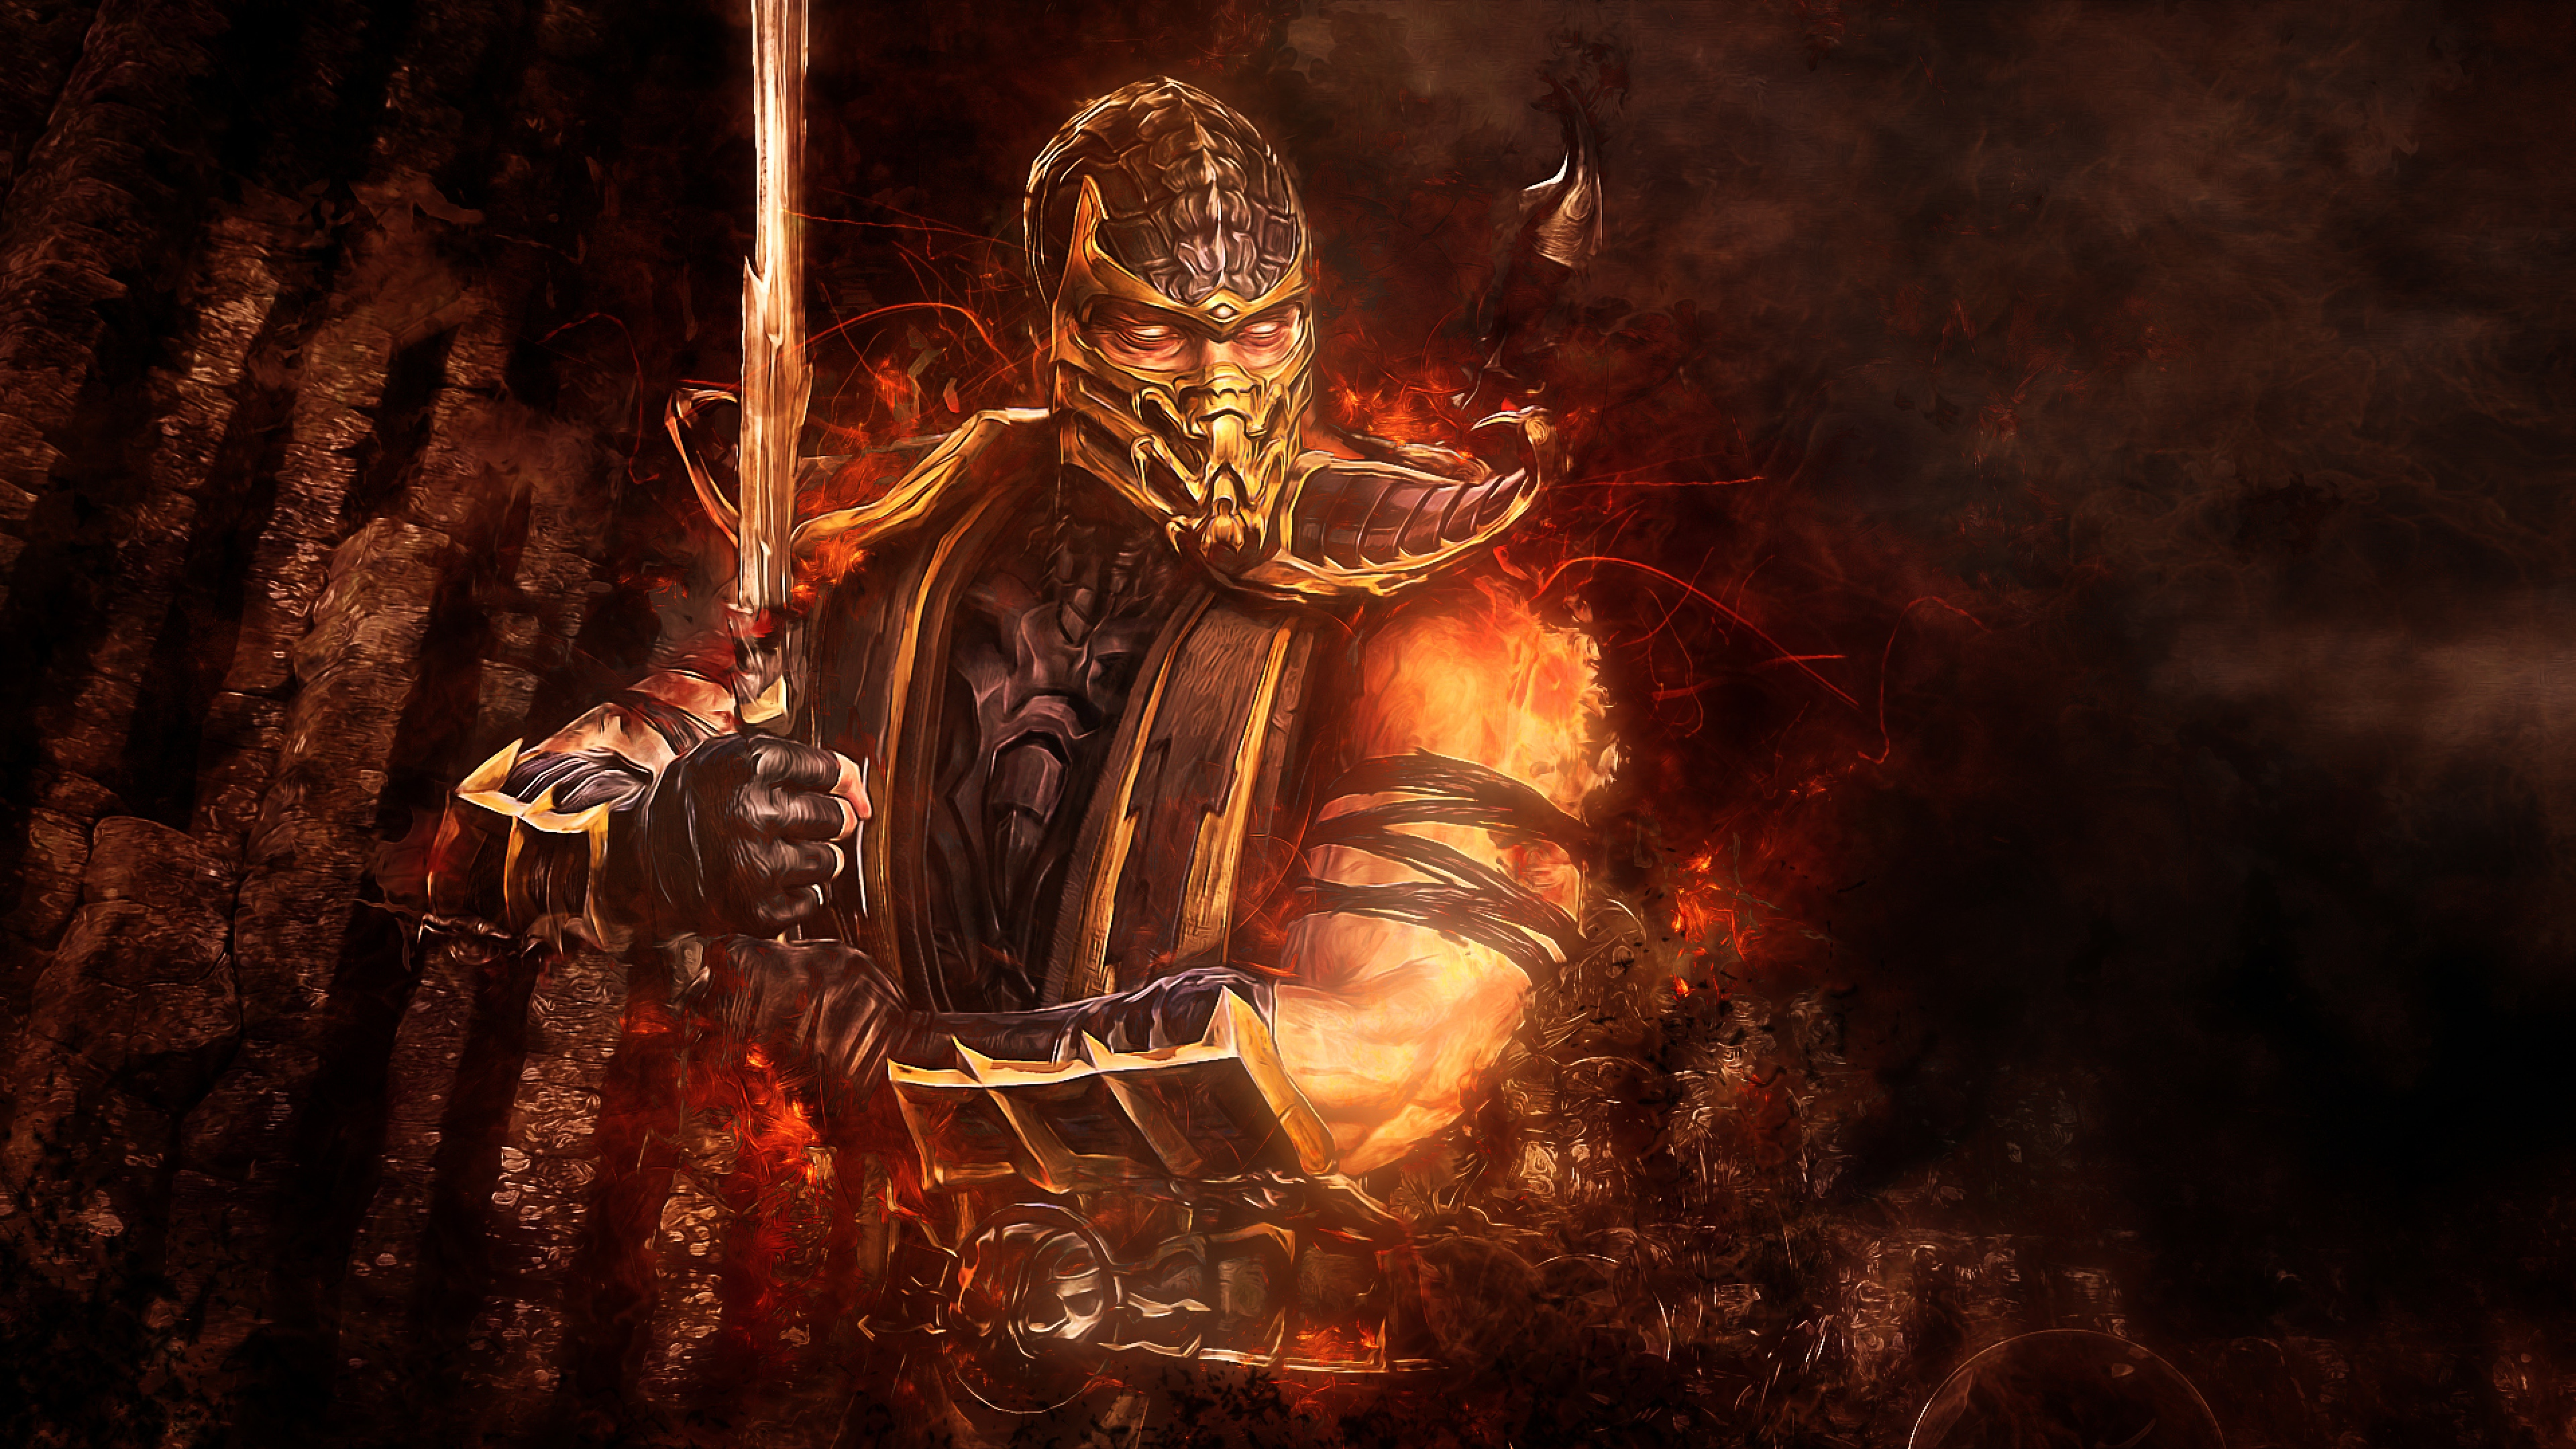 mortal kombat scorpion, hd games, 4k wallpapers, images, backgrounds